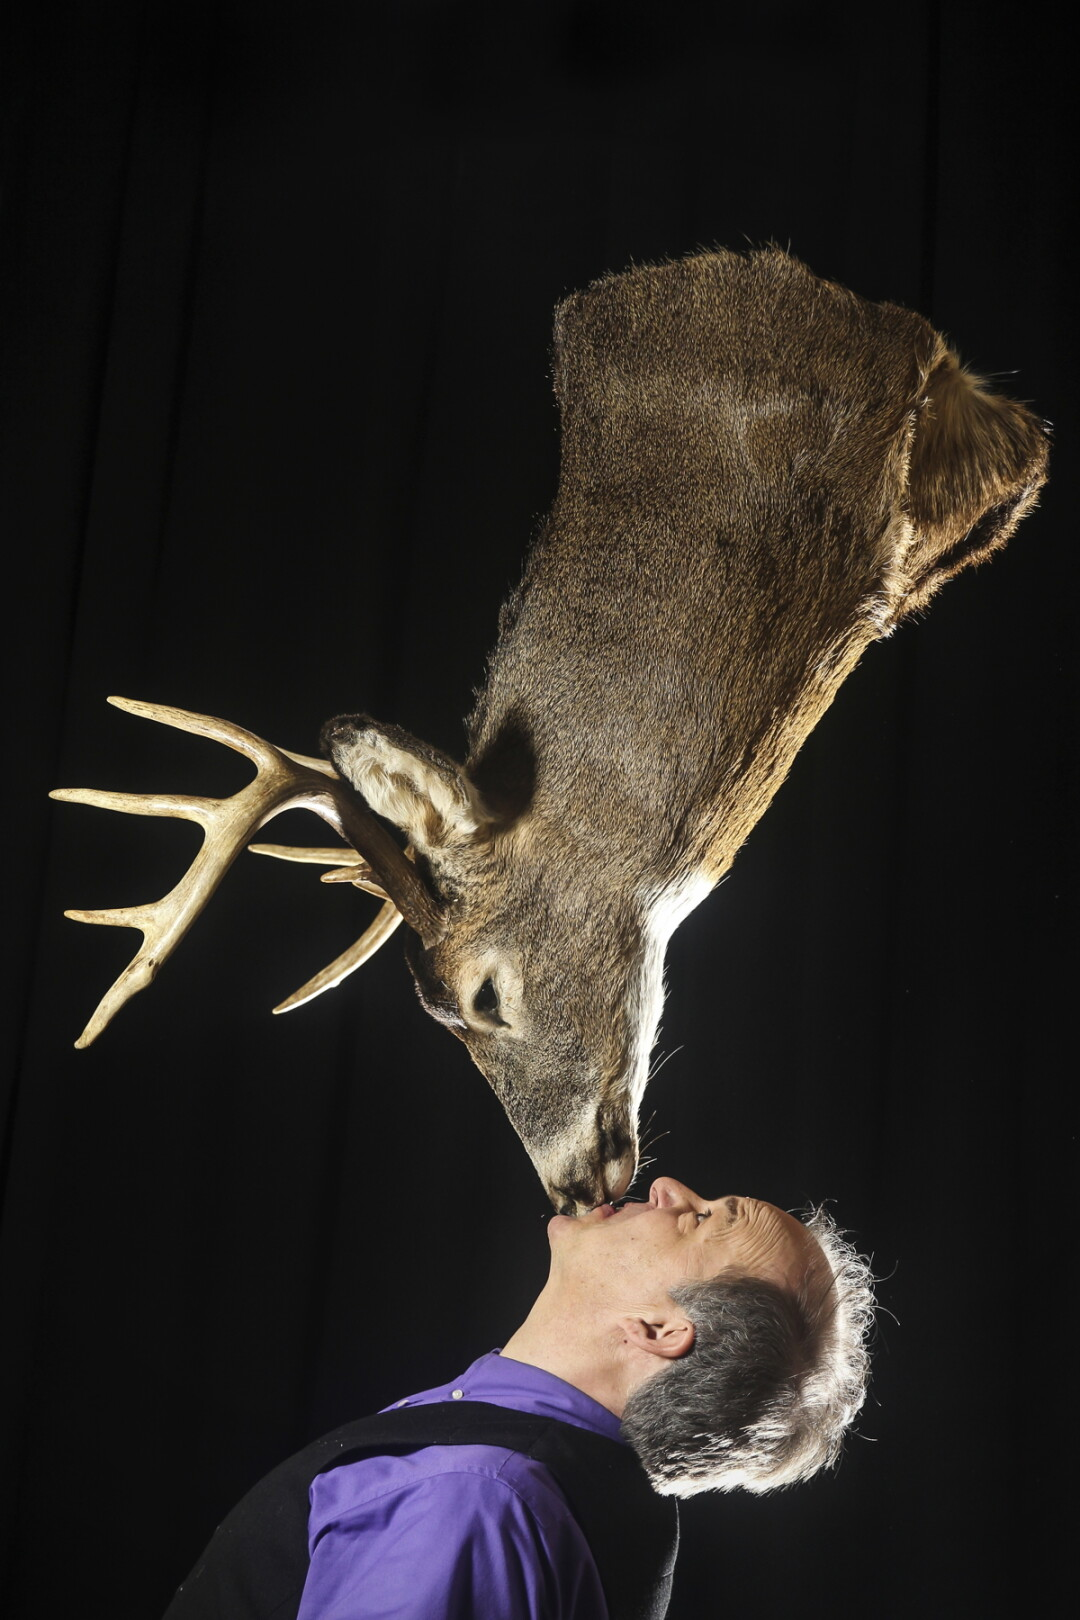 JUST KISS ME, DEER. Stores from Steve Russell's 35-year career as a traveling comedic entertainer provided plenty of material for his new one-man stage show, The Casual Suspect.